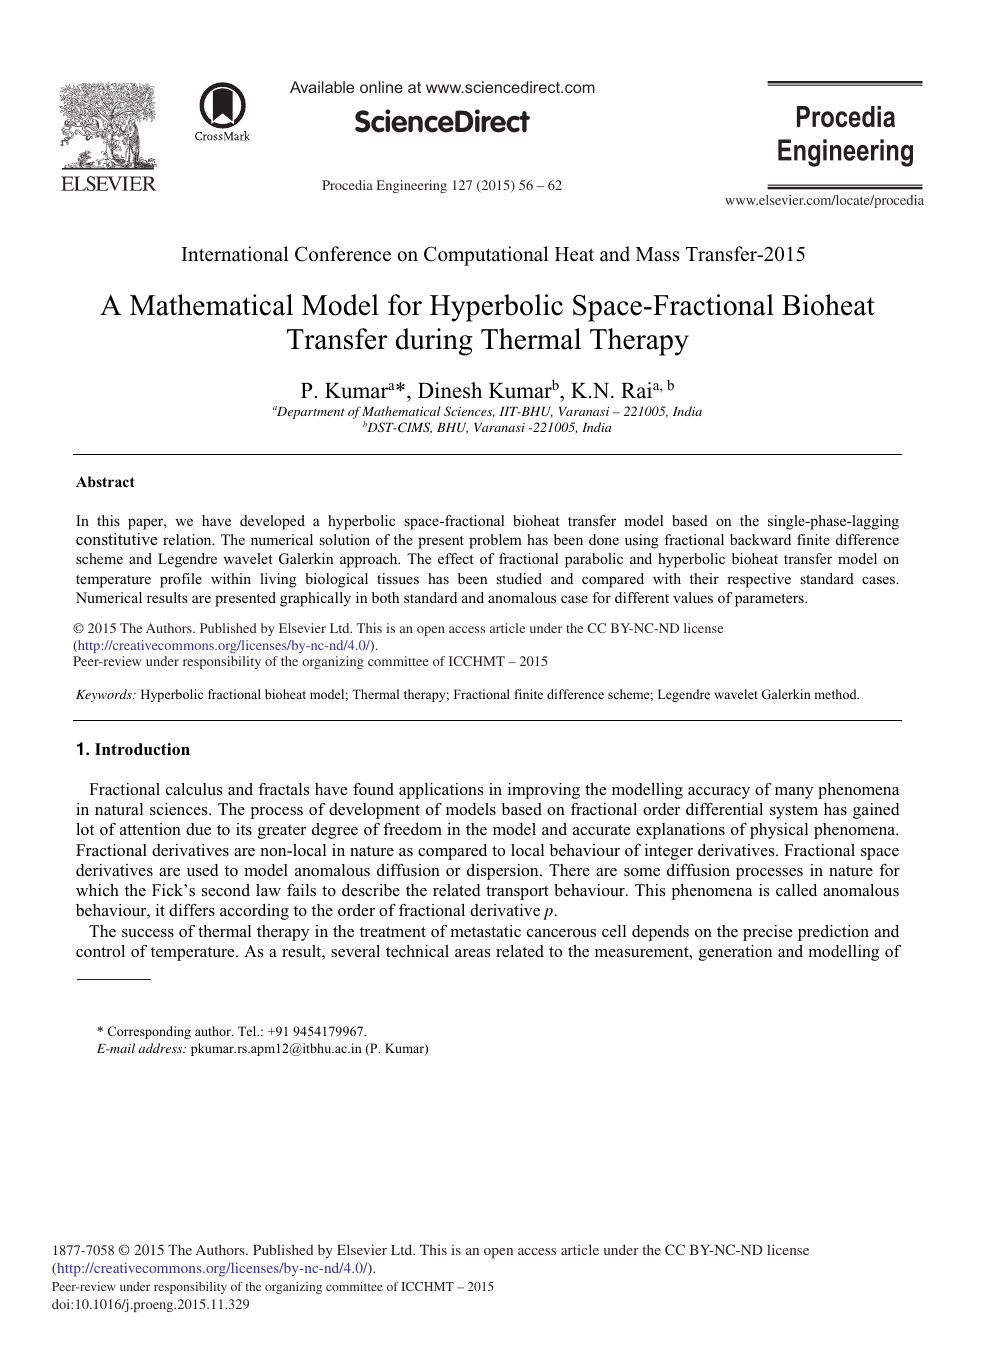 A Mathematical Model for Hyperbolic Space-fractional Bioheat